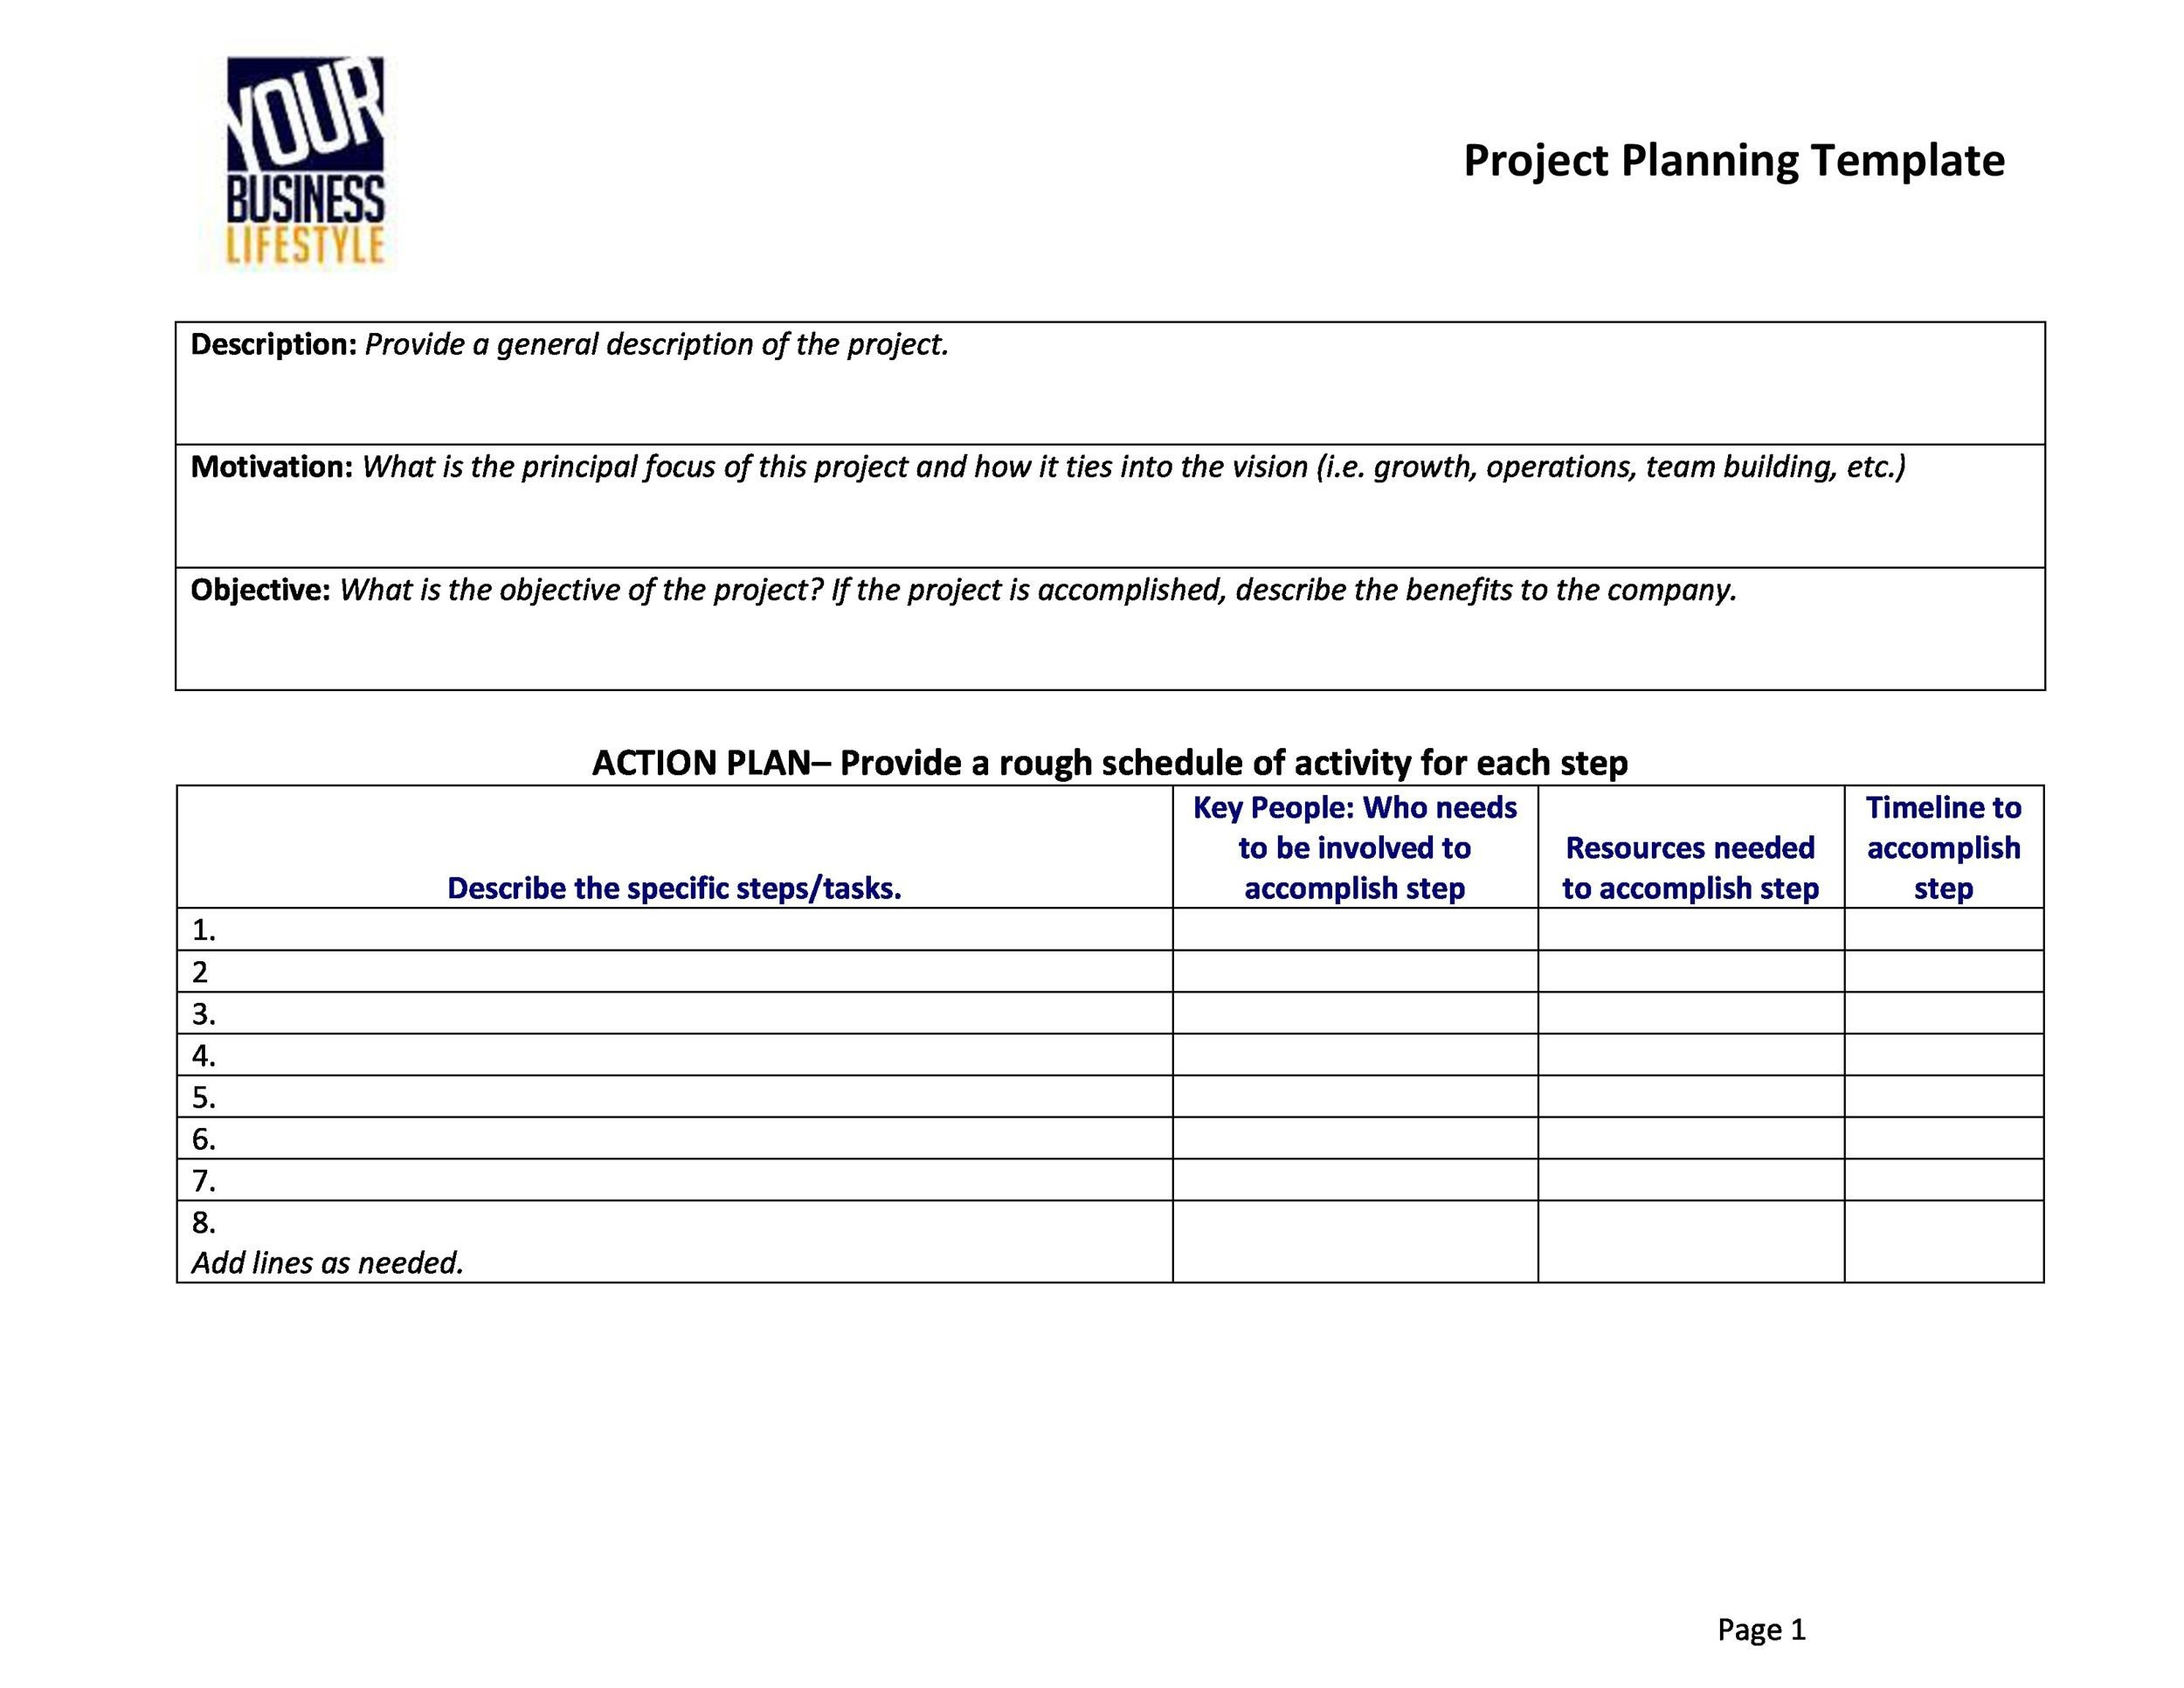 48 Professional Project Plan Templates [Excel, Word, PDF] - Template Lab